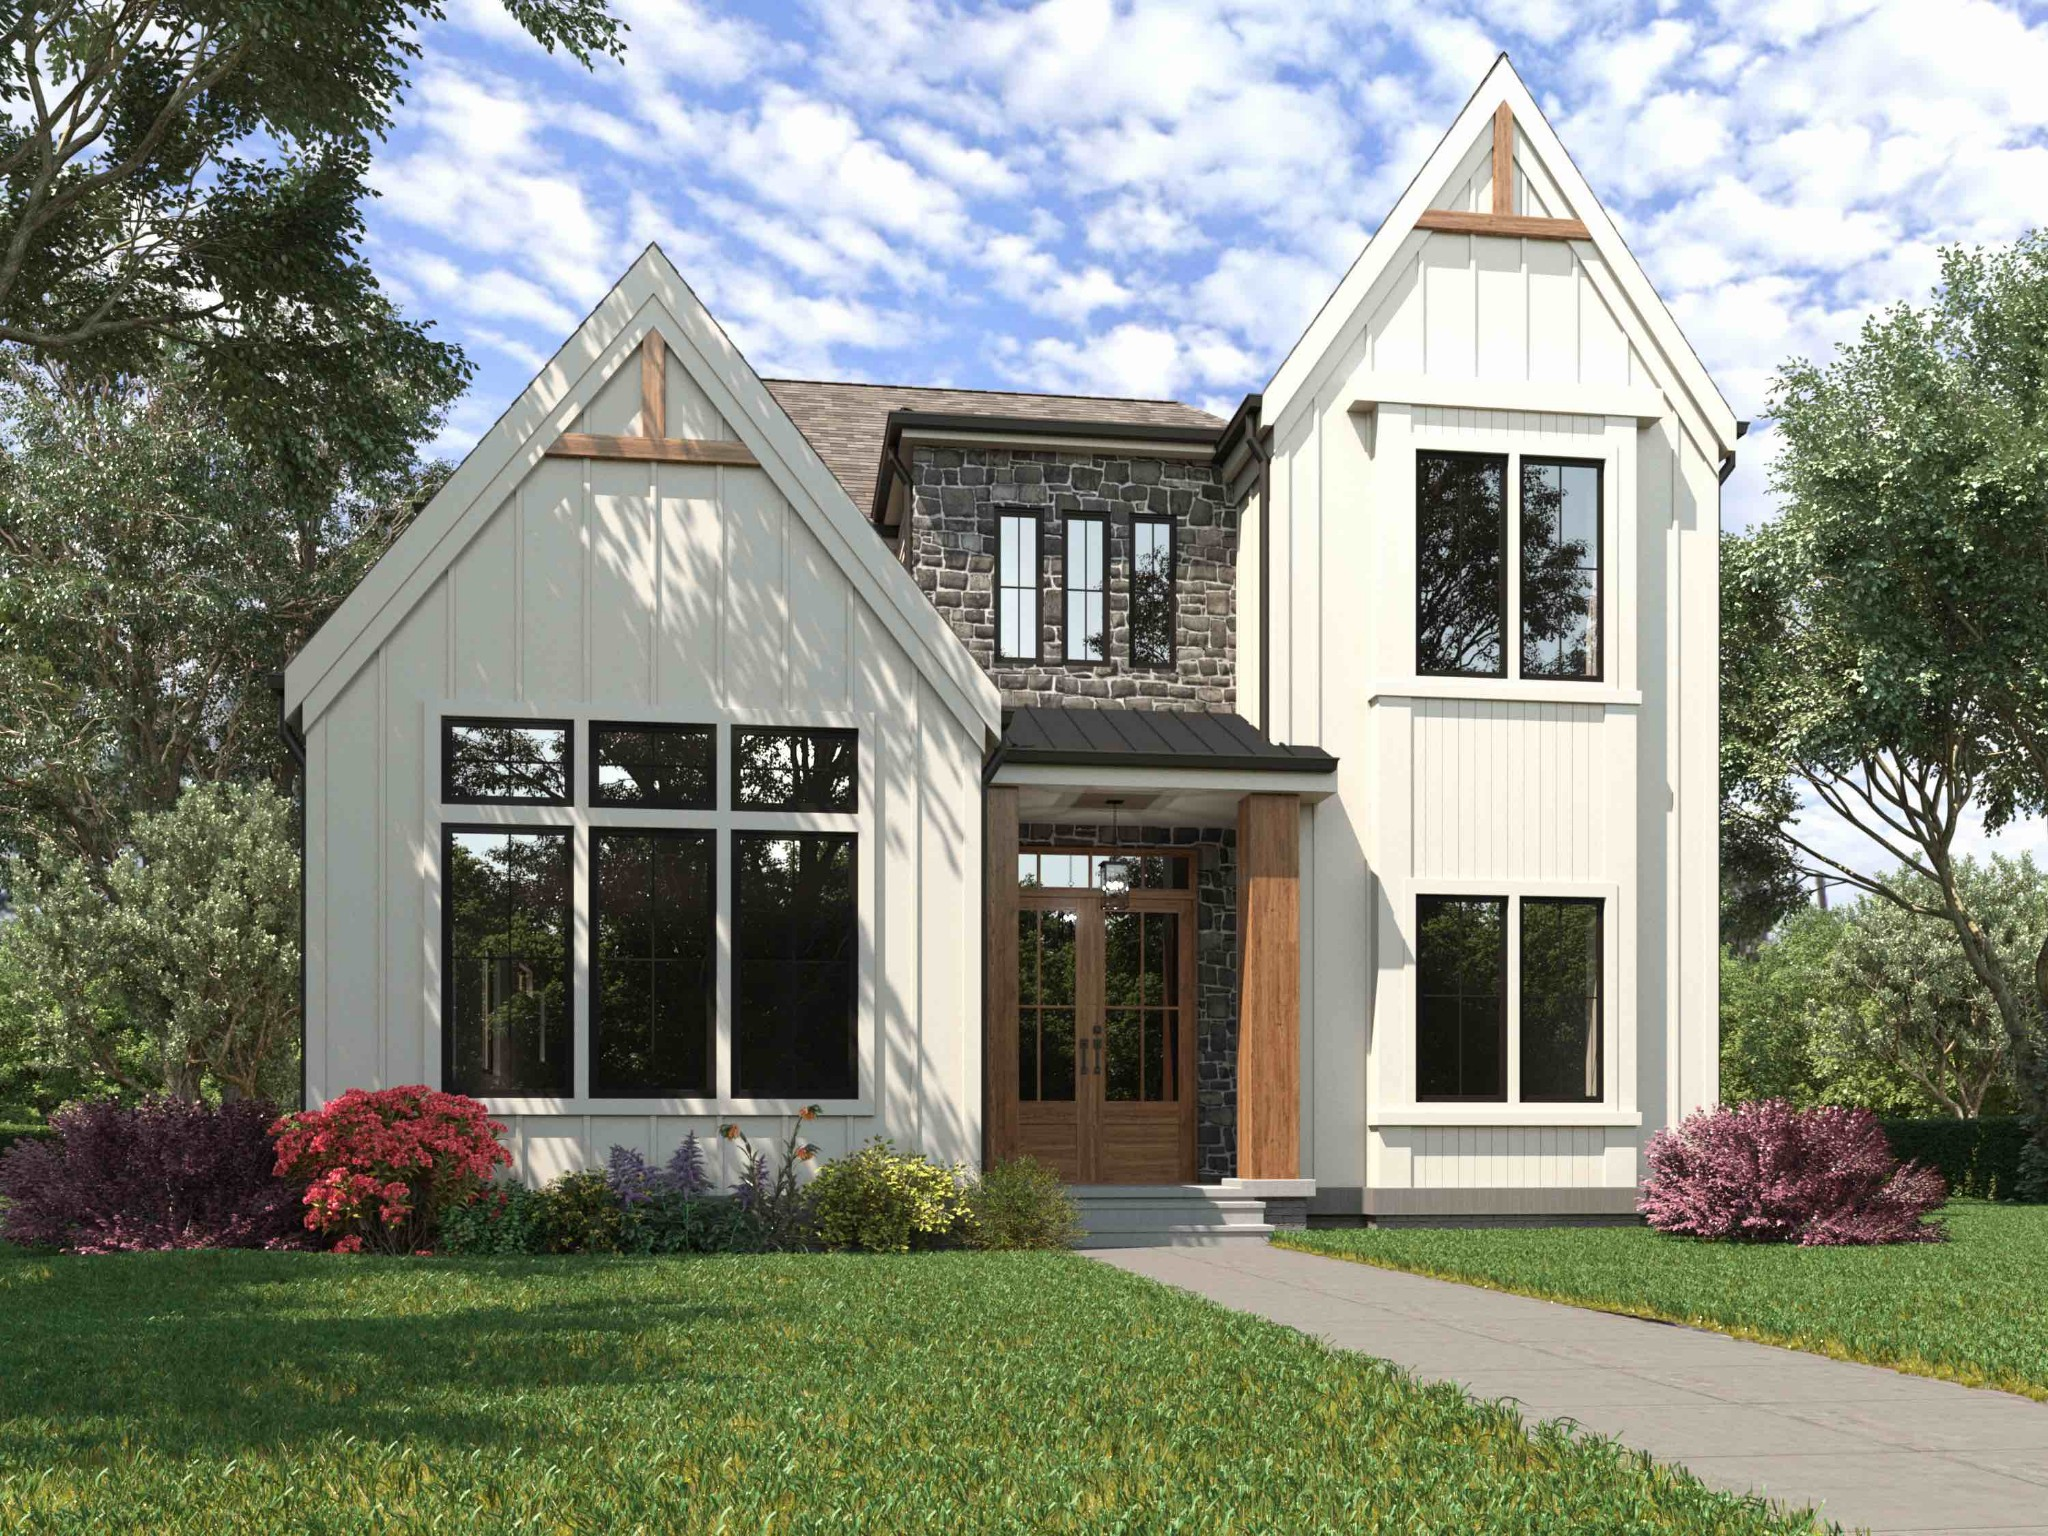 """Located on one of the most private streets in Sylvan Park. 4104 Media St features 4 bedrooms, 5 bathrooms, gourmet kitchen with 72"""" refrigerator, double ovens, gas cook top, office study, 2 car garage, huge front yard, deep lot, and a detached studio with wet bar."""